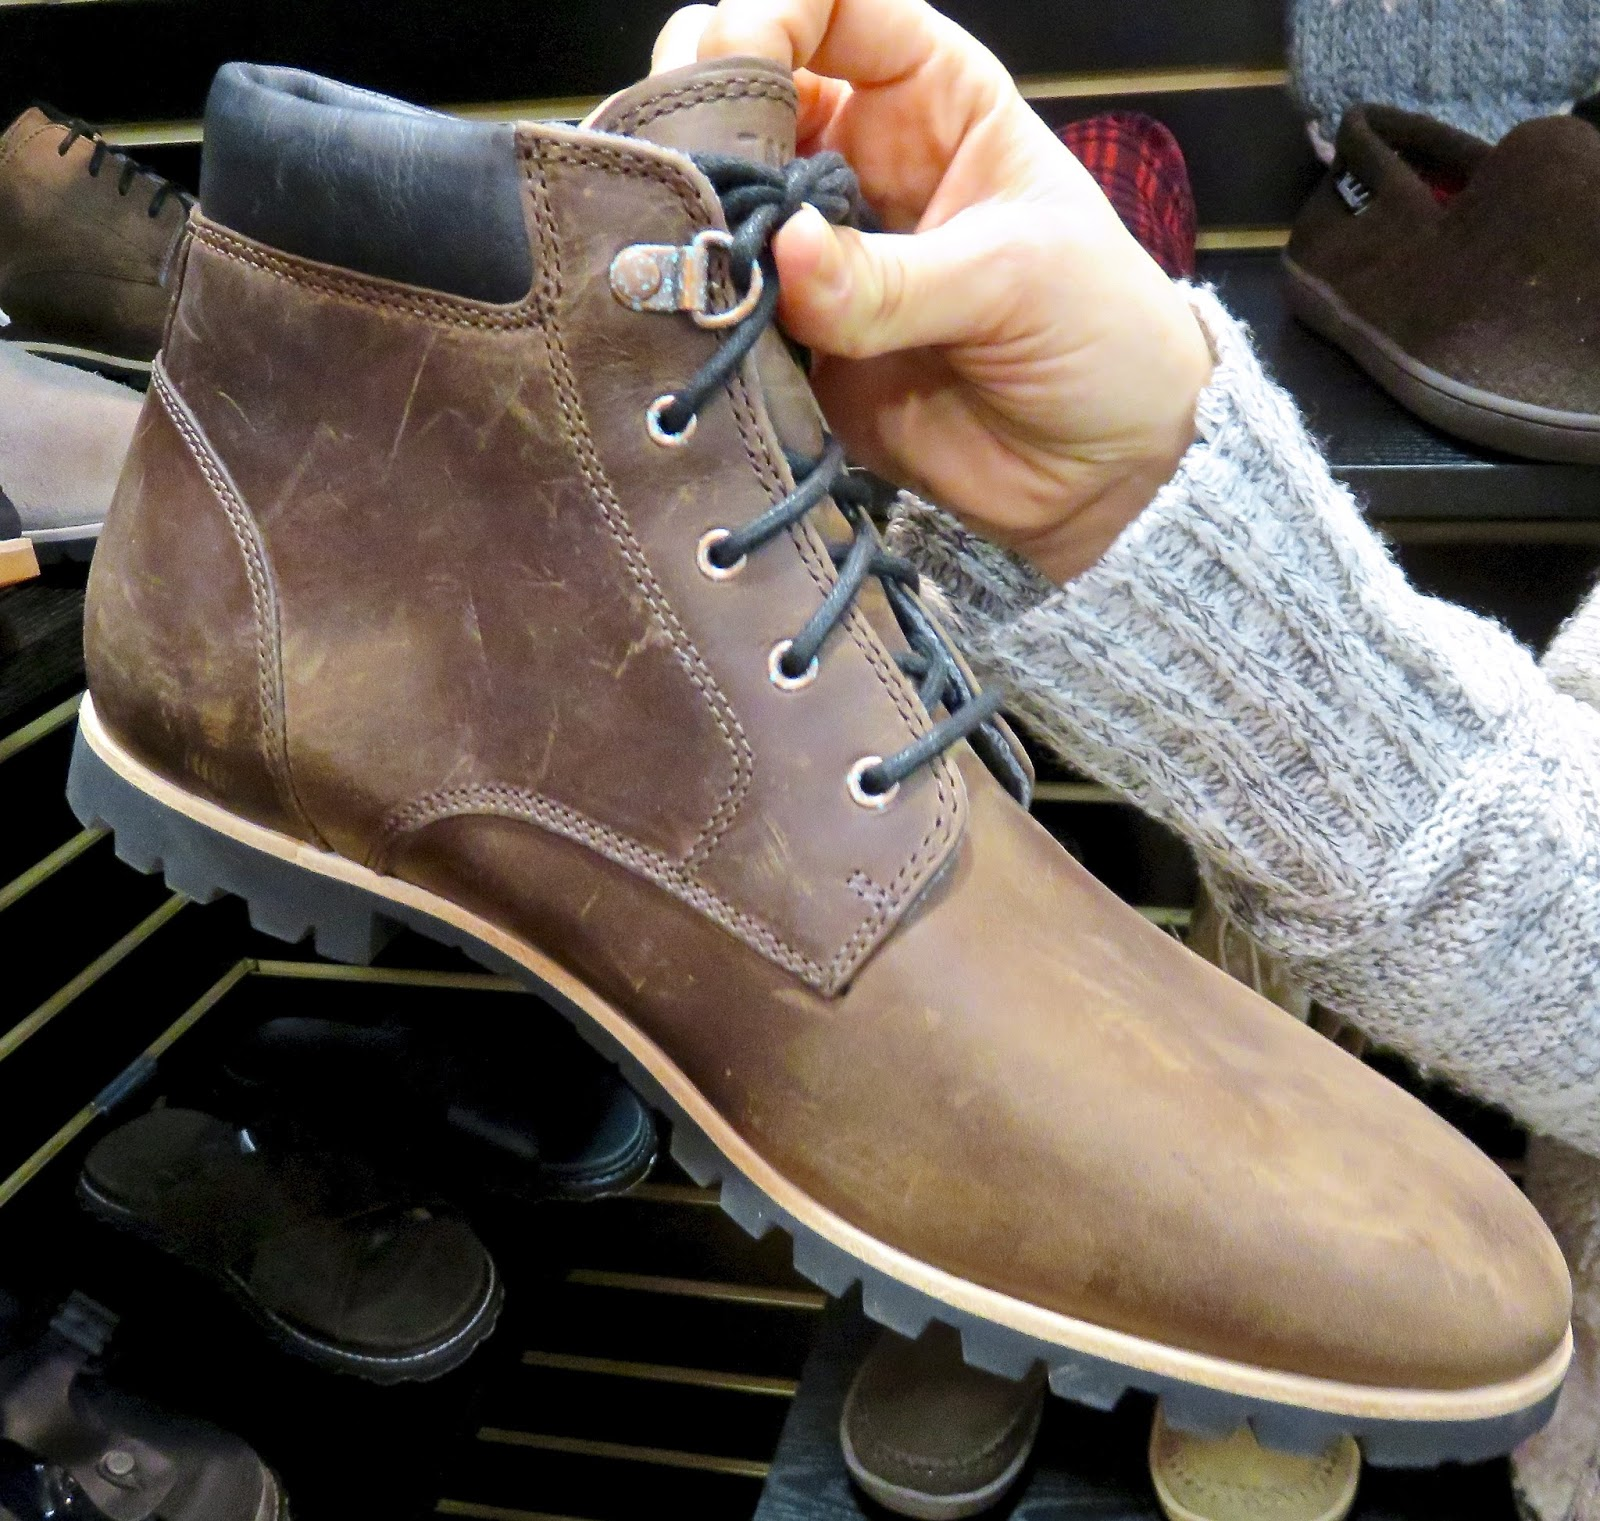 men's boots are bug for Spring 2016...BEEBE in Bitter Chocolate Leather  $180 full grain leather upper, wool lining, comfort footbed, Vibram outsole  $180